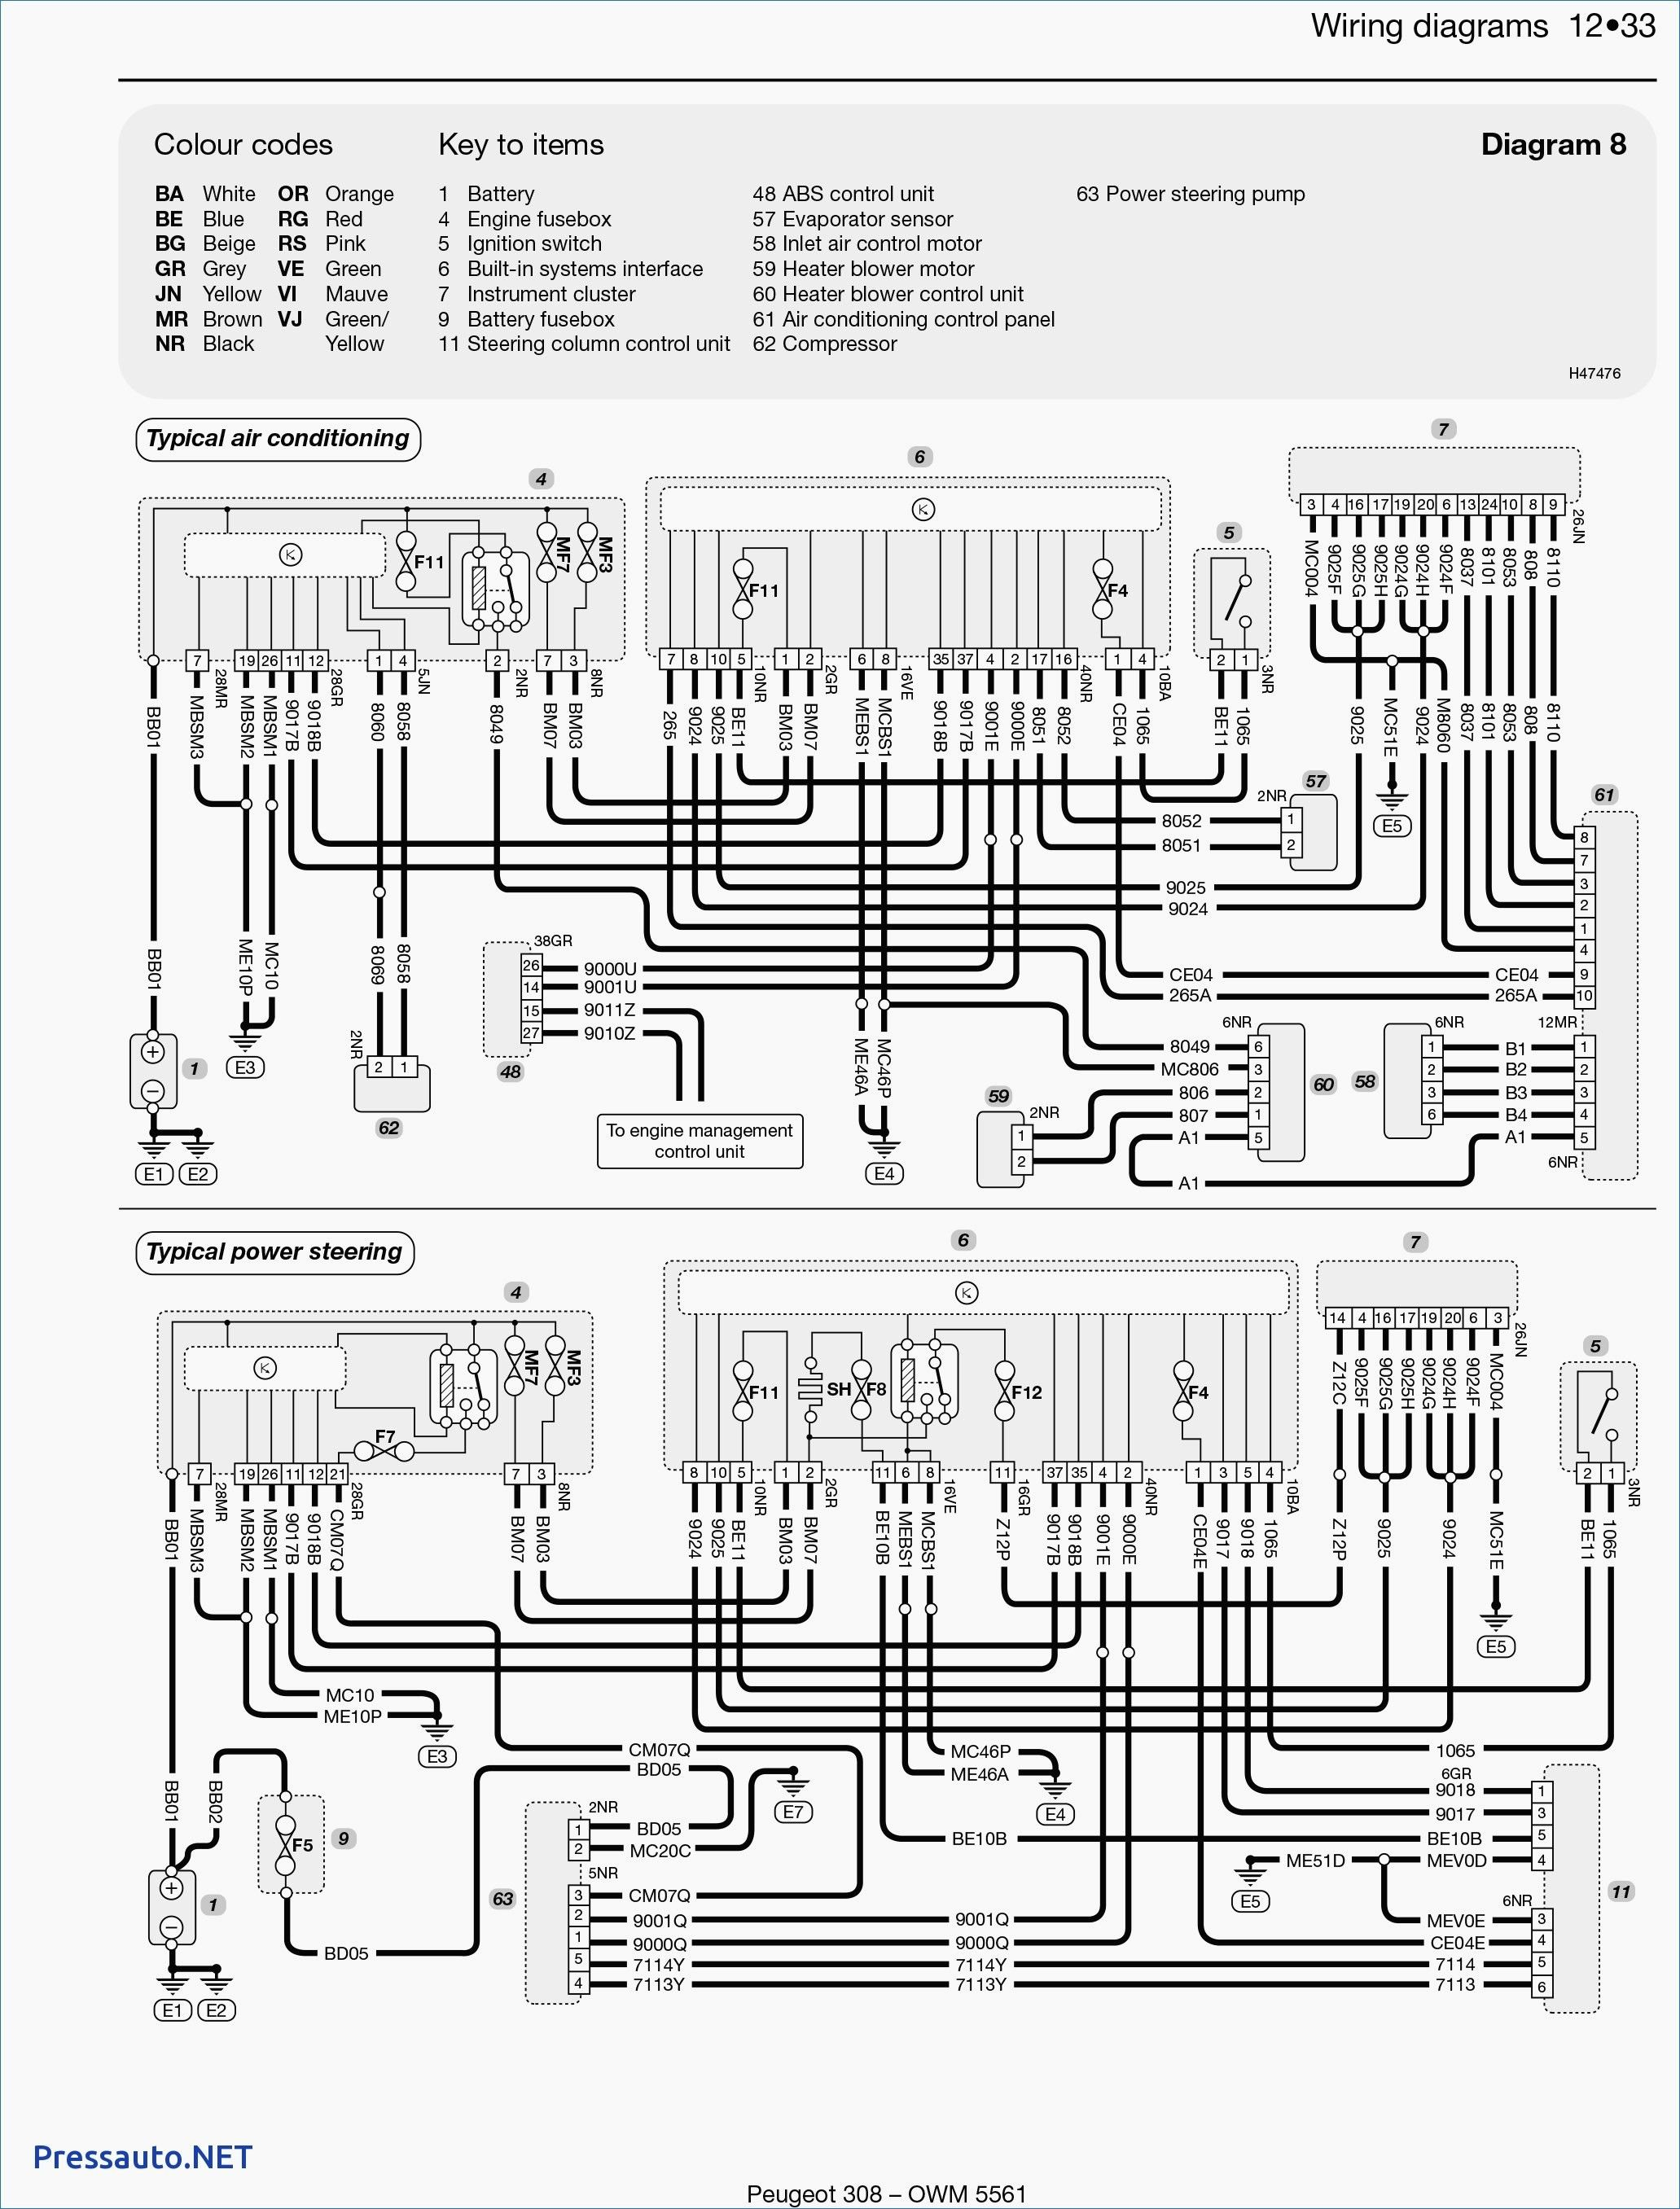 medium resolution of wiring diagram for peugeot 206 stereo best of fortable in